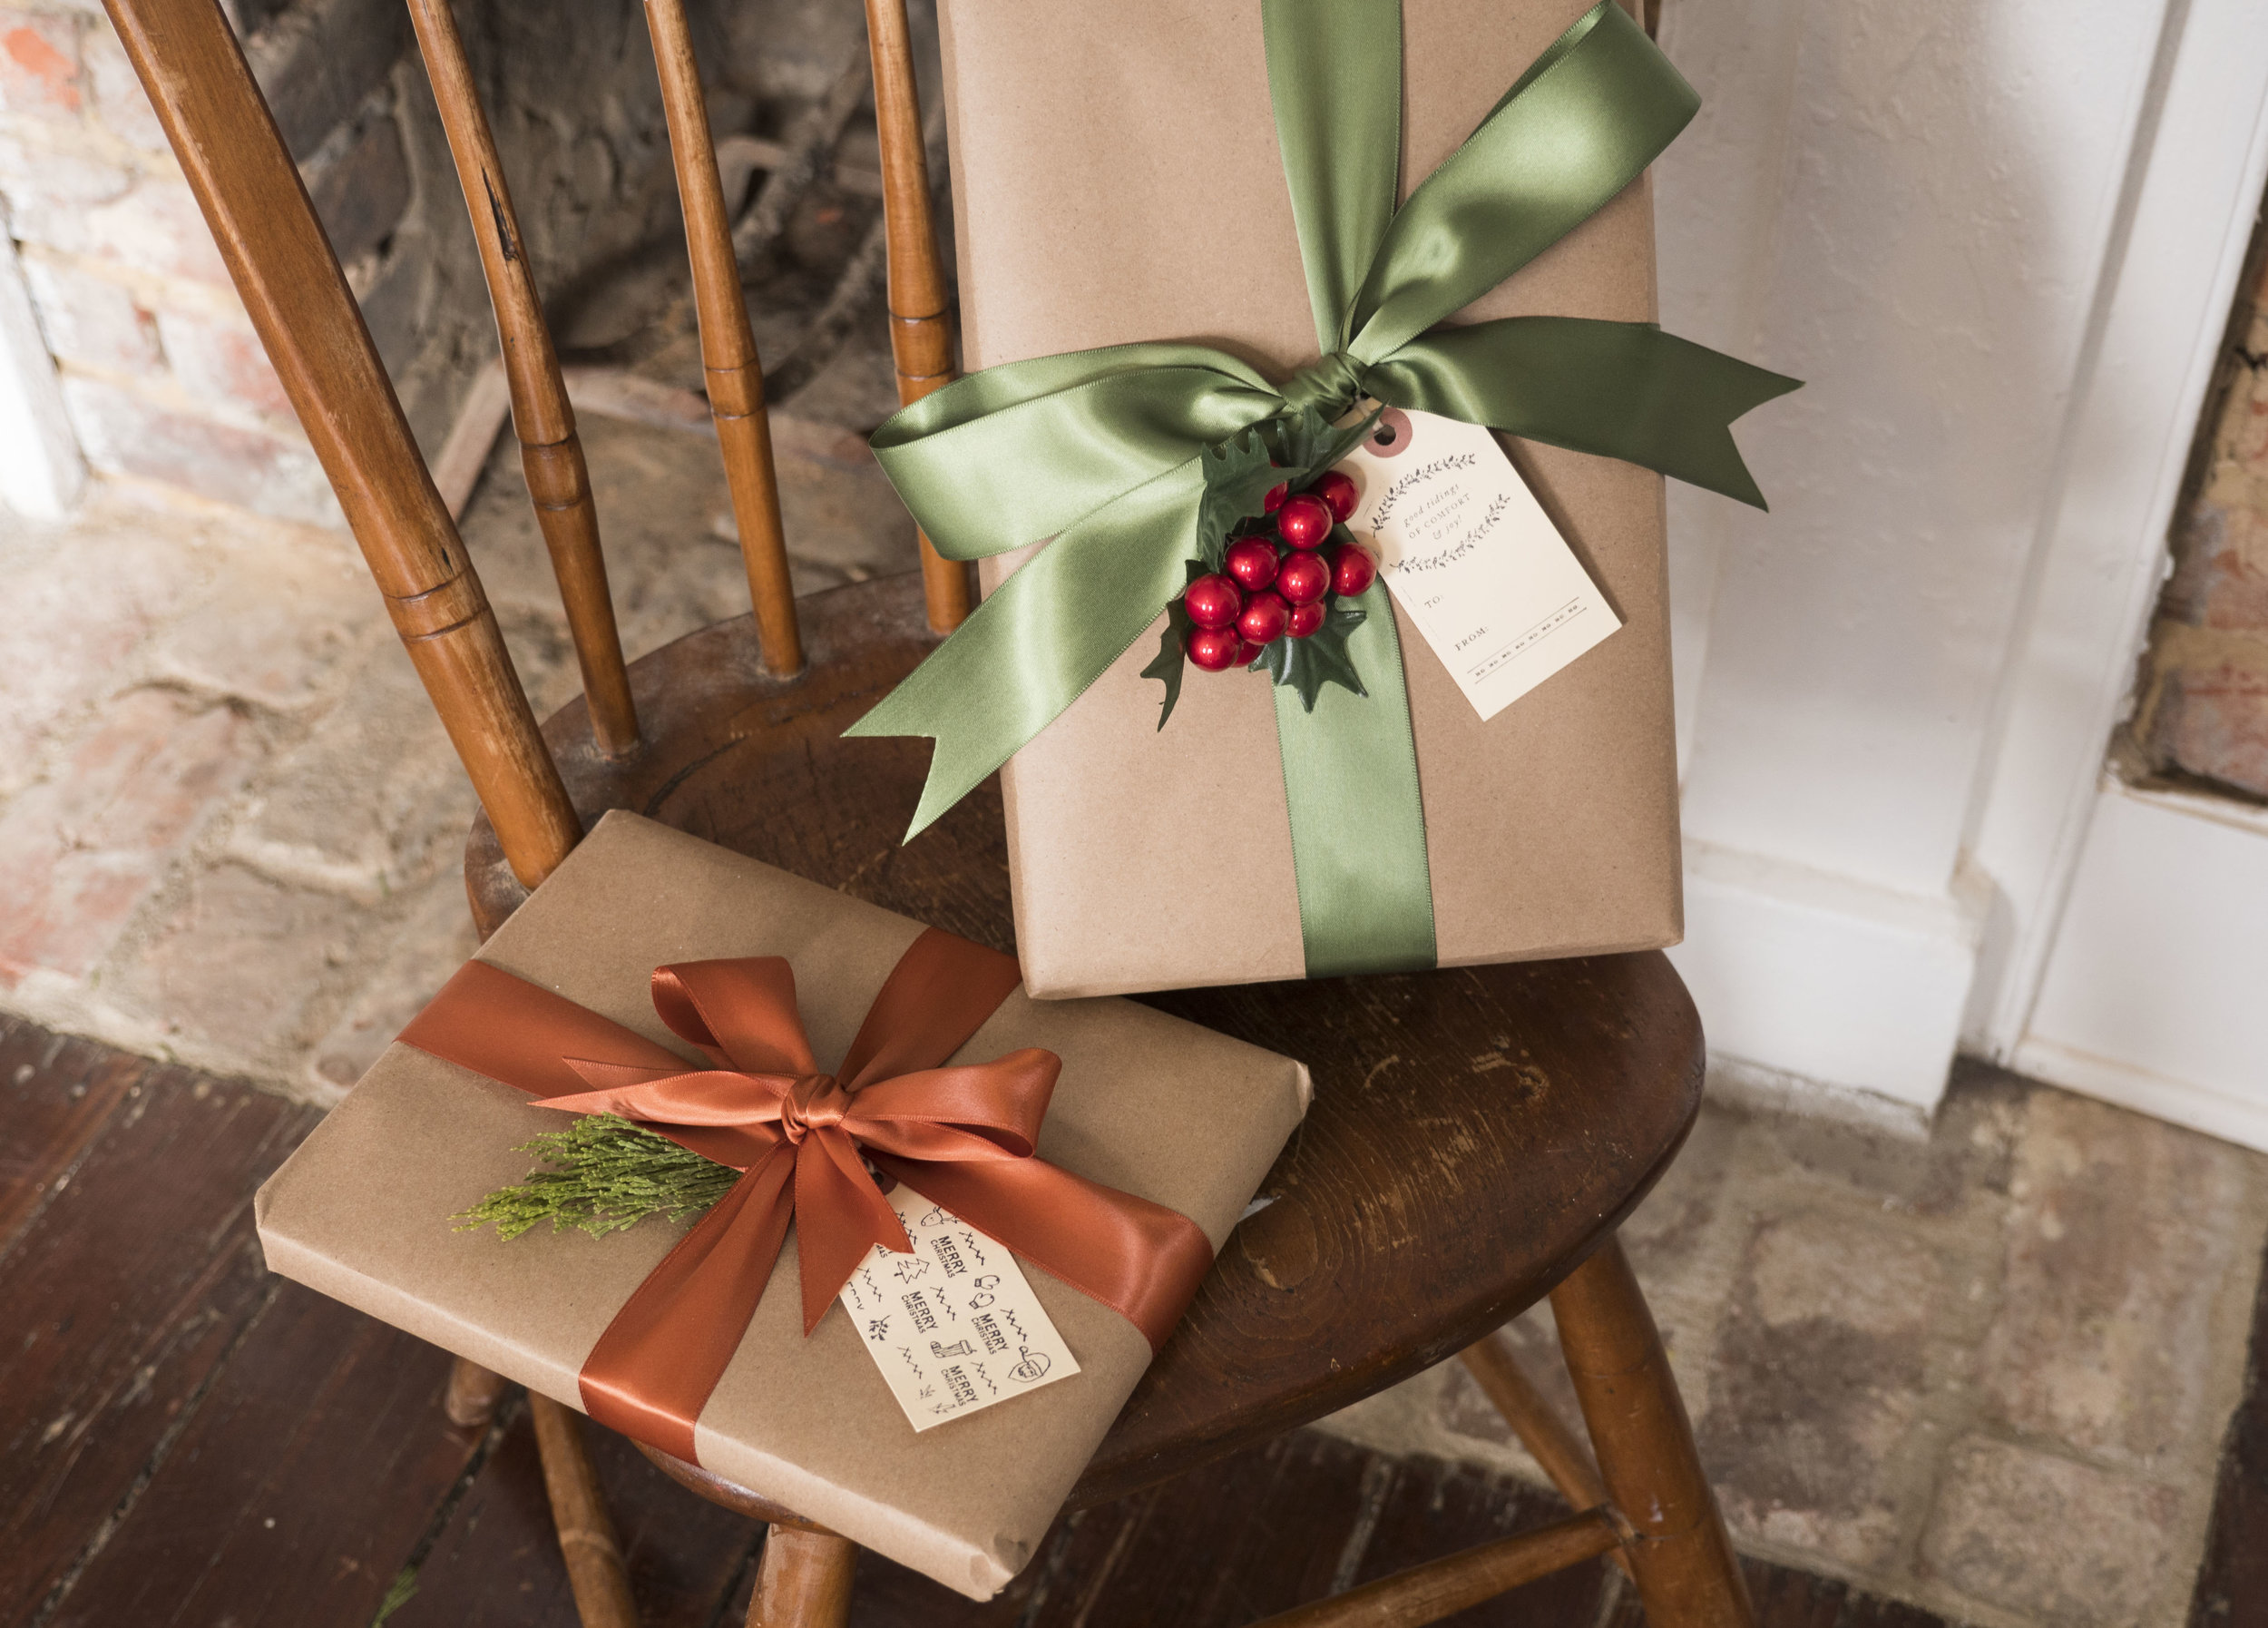 _1004681Wrapping_hacks_Classic_chic_wrapping_how_to_wrap_a_present.JPG